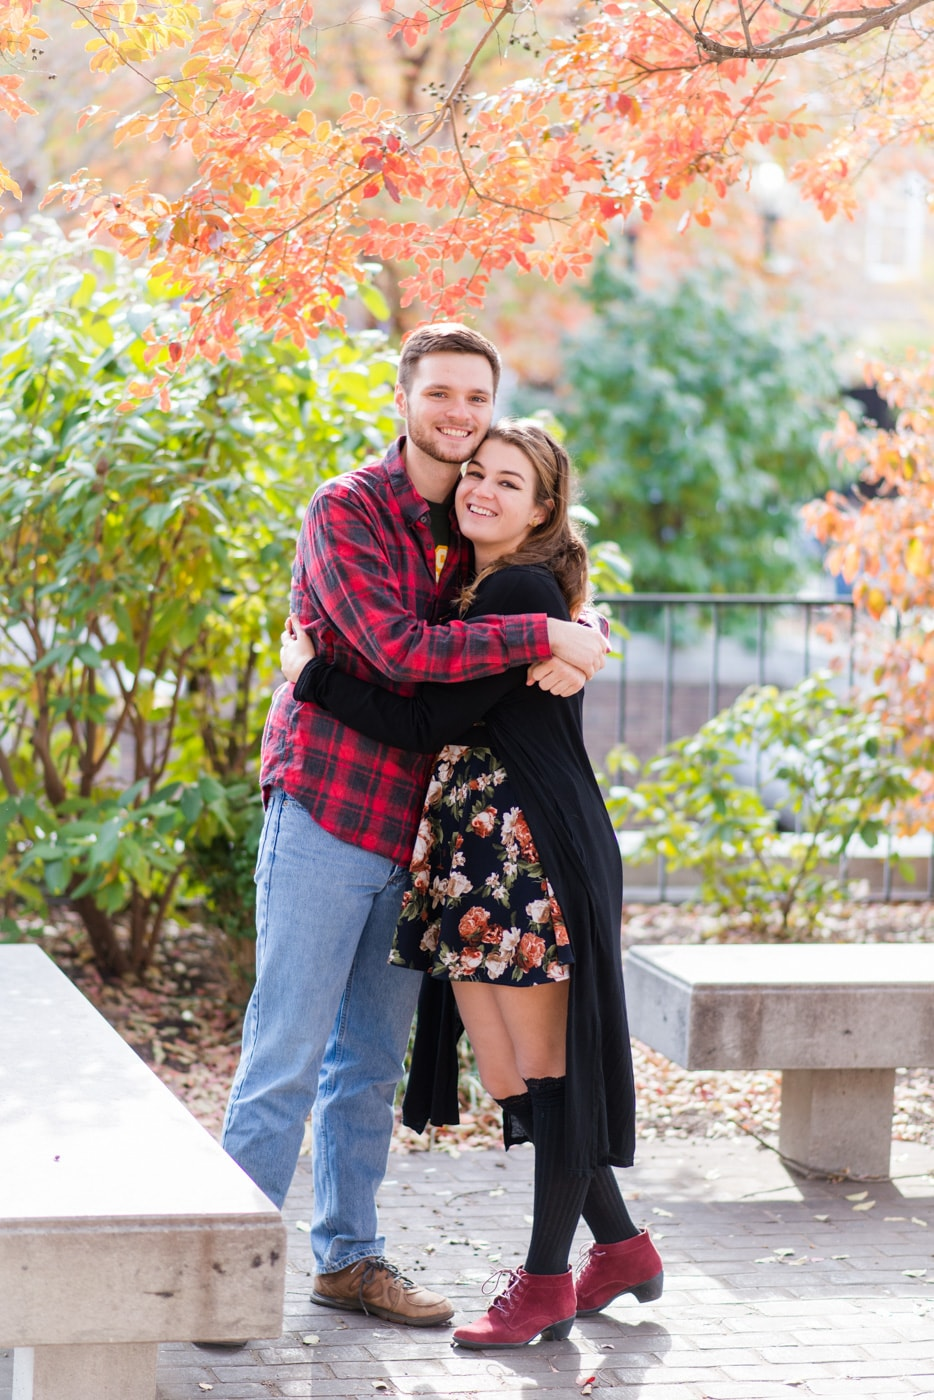 A young couple embrace and smile at the camera in the middle of fall foliage in Old Town Alexandria